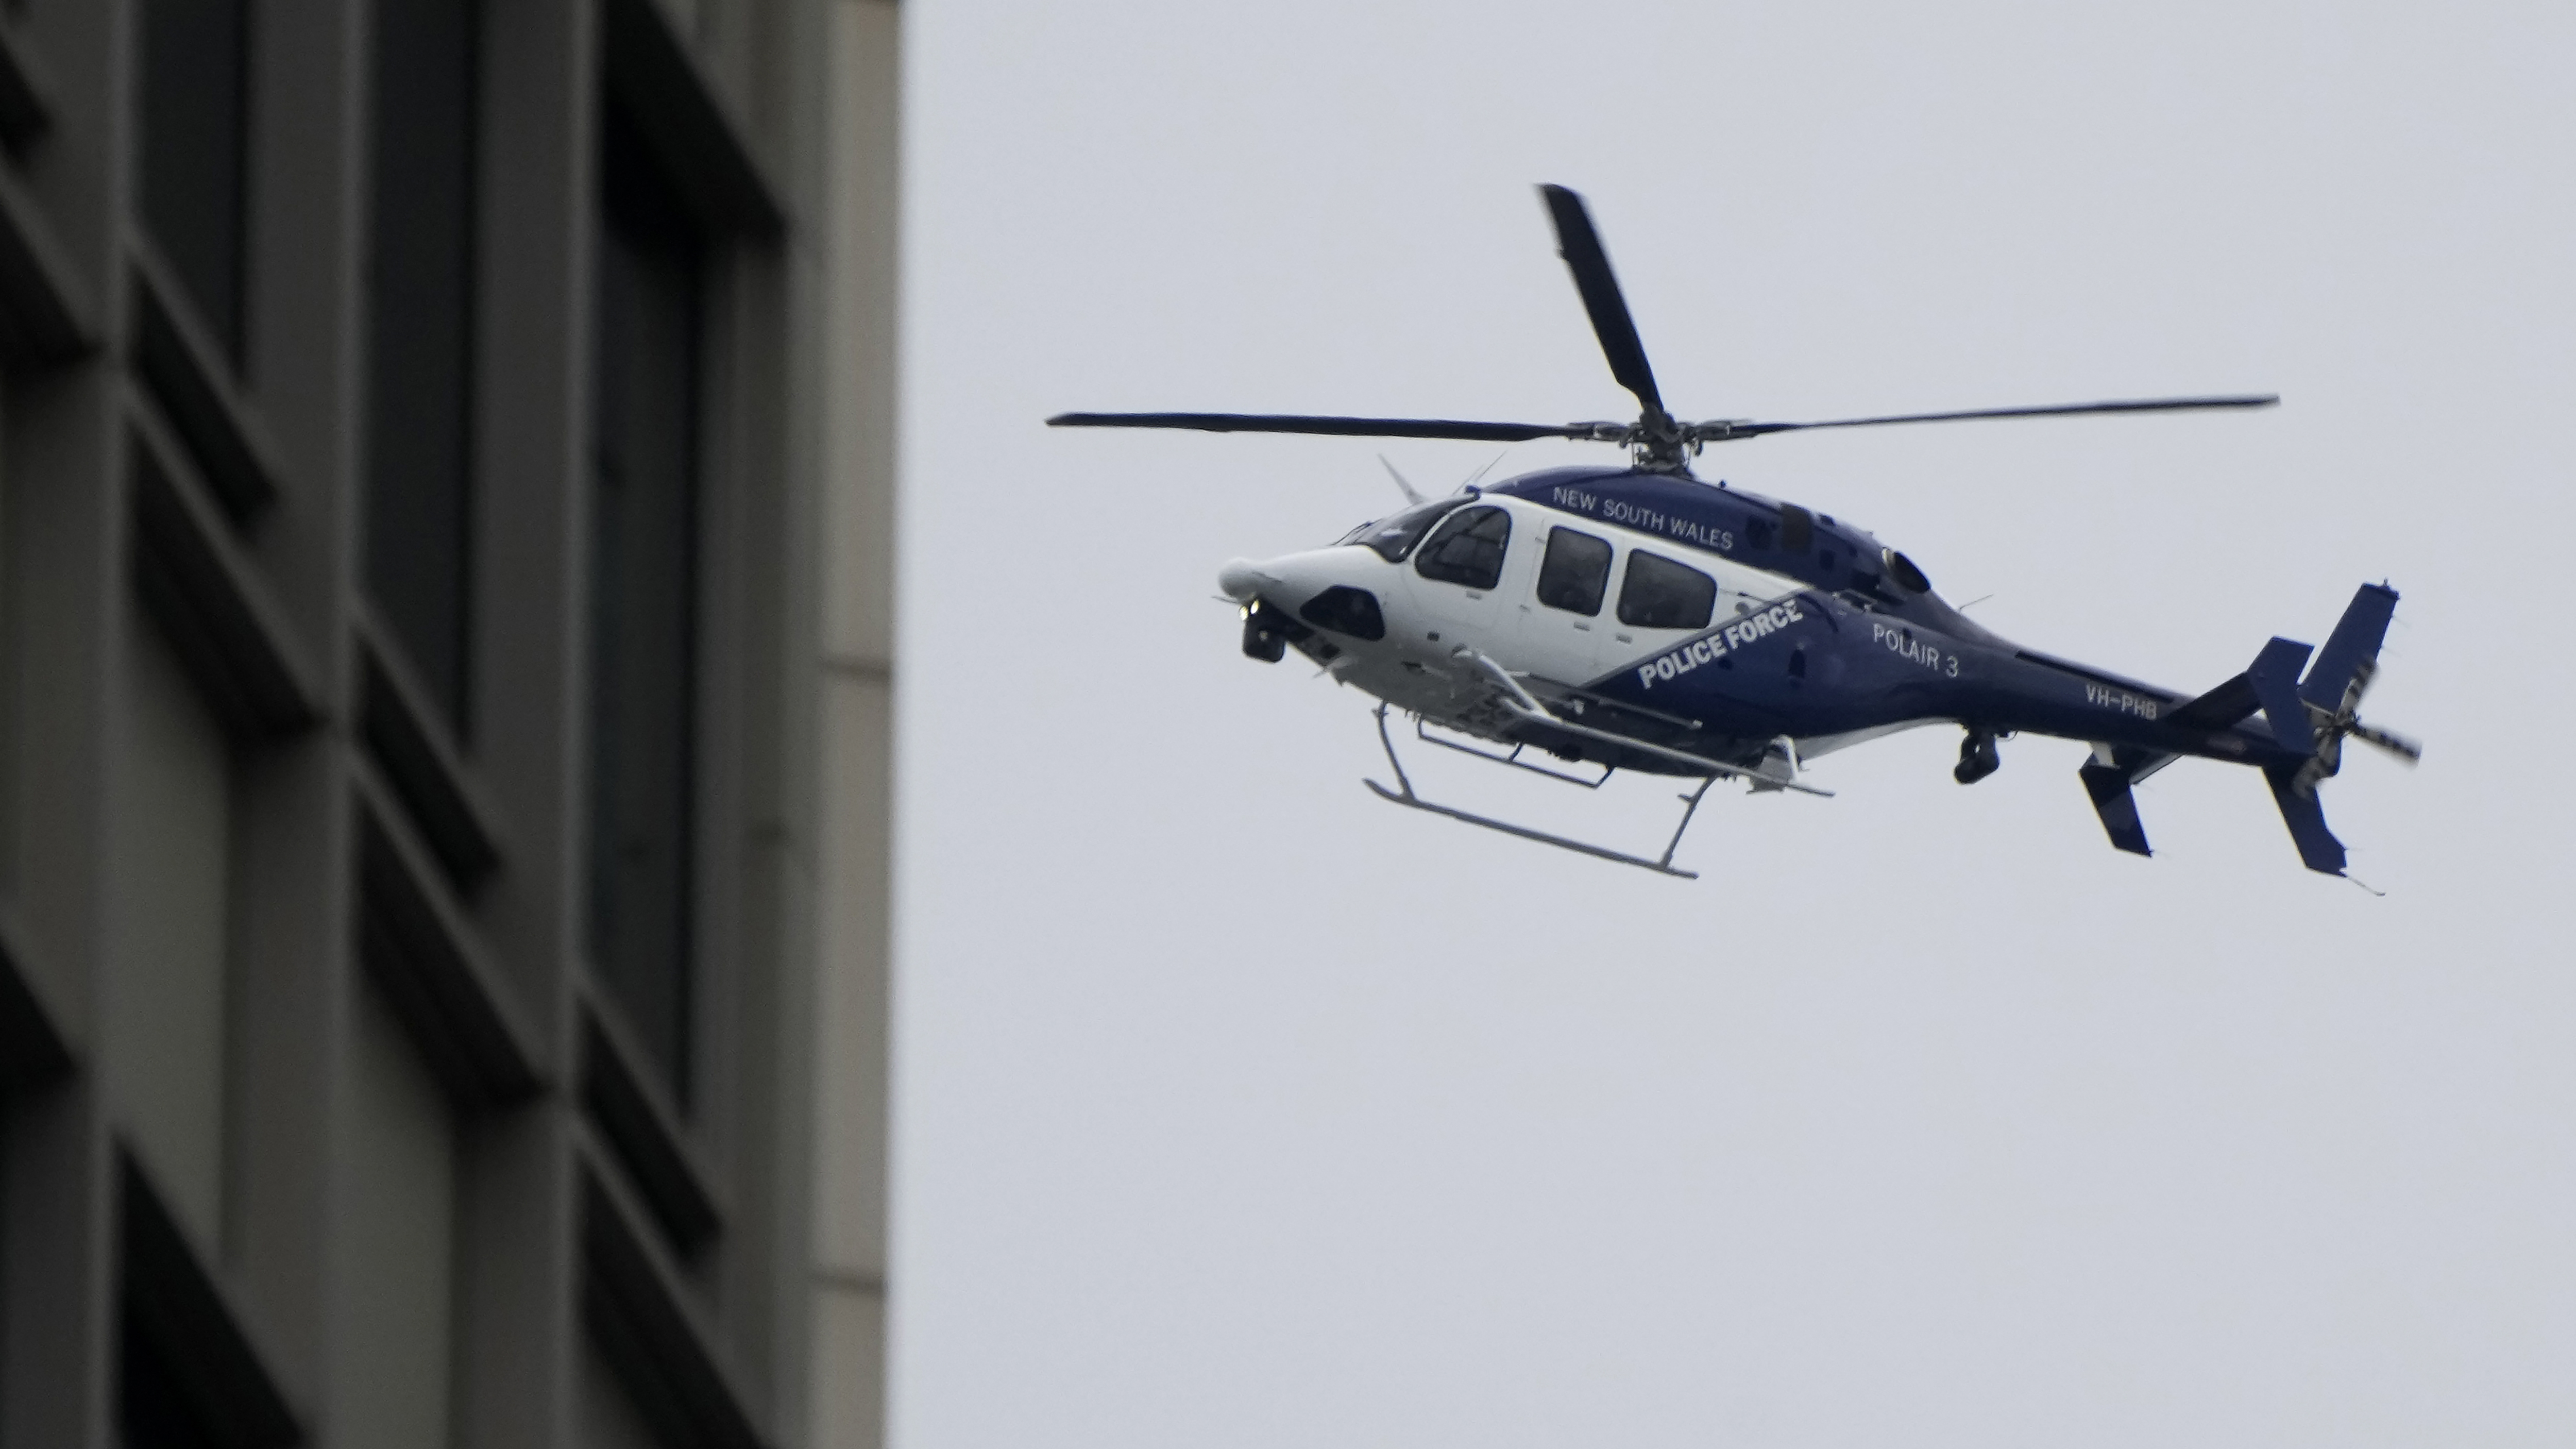 A New South Wales police helicopter patrols the sky over the central business district in Sydney.